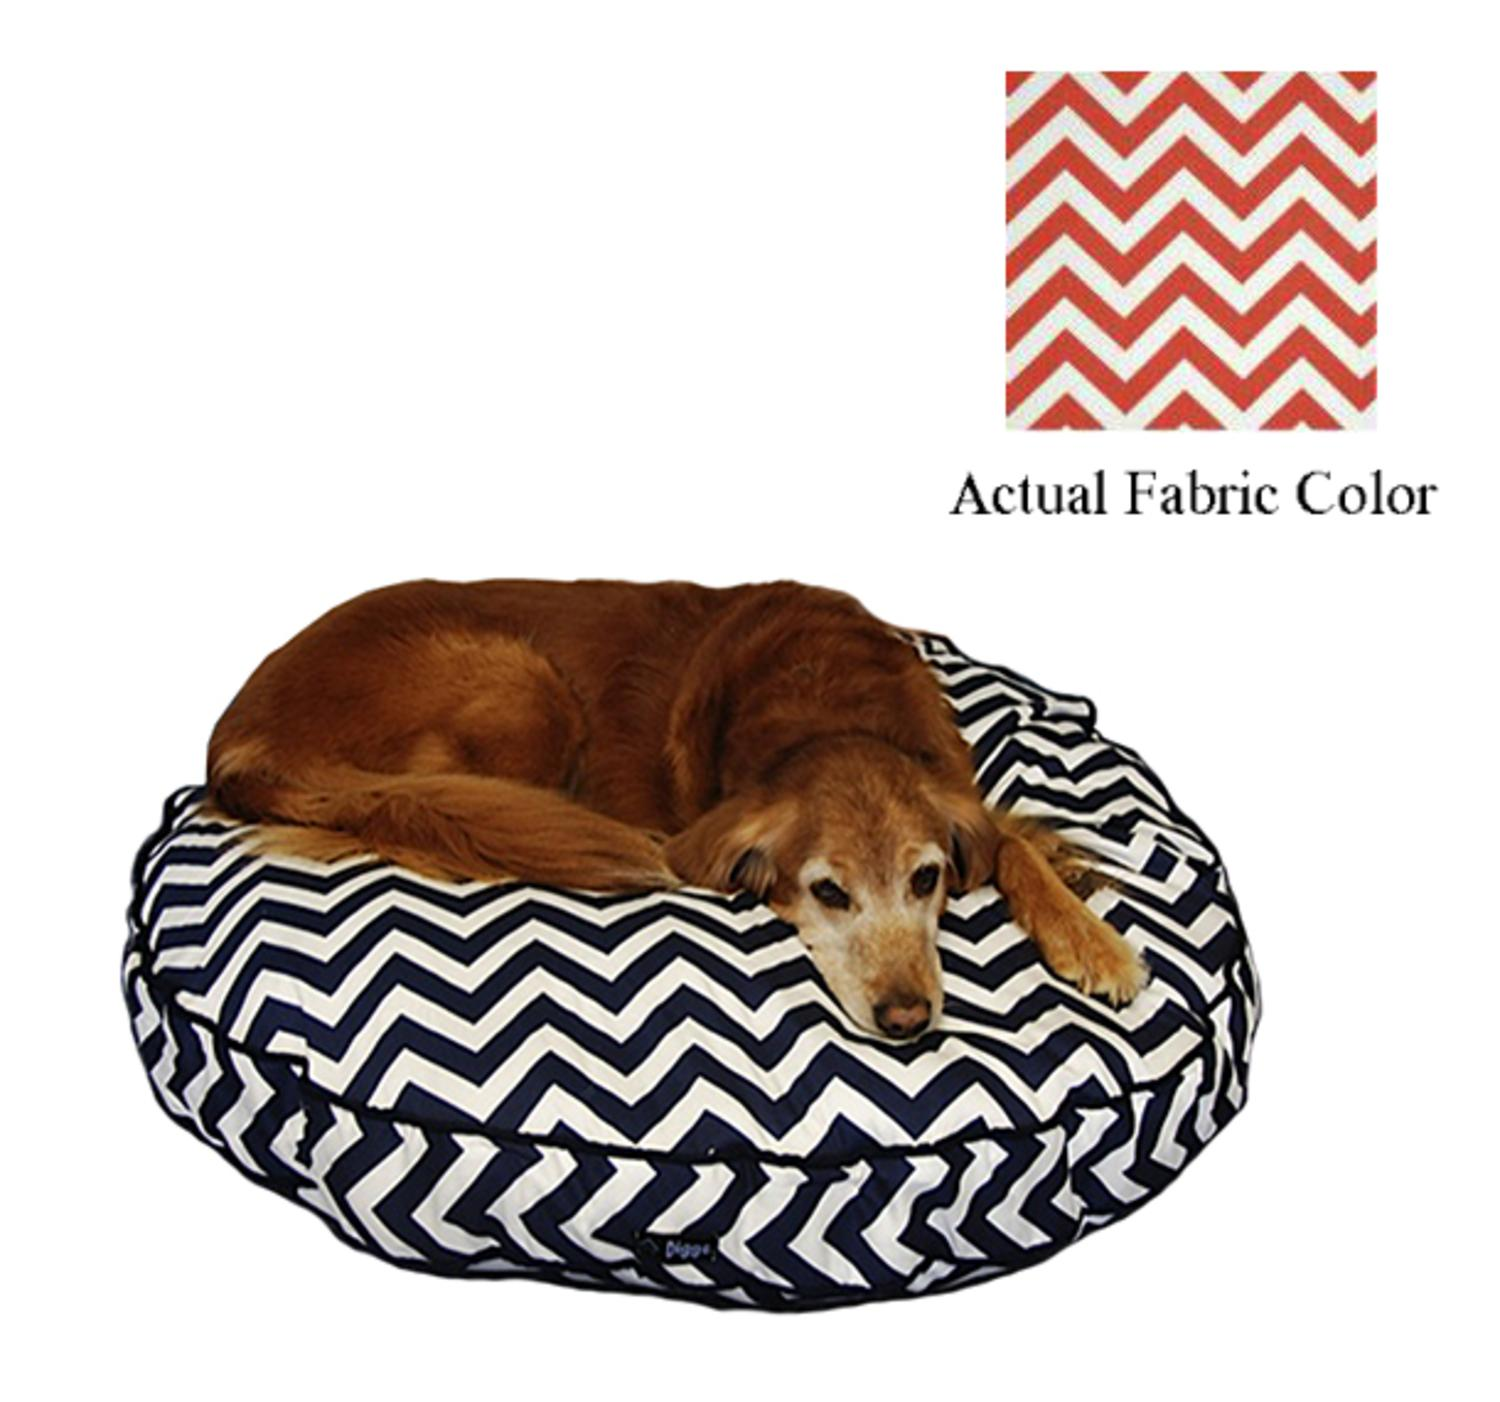 Coral and White Chevron Printed Deluxe Round Pet Dog Bed - Large